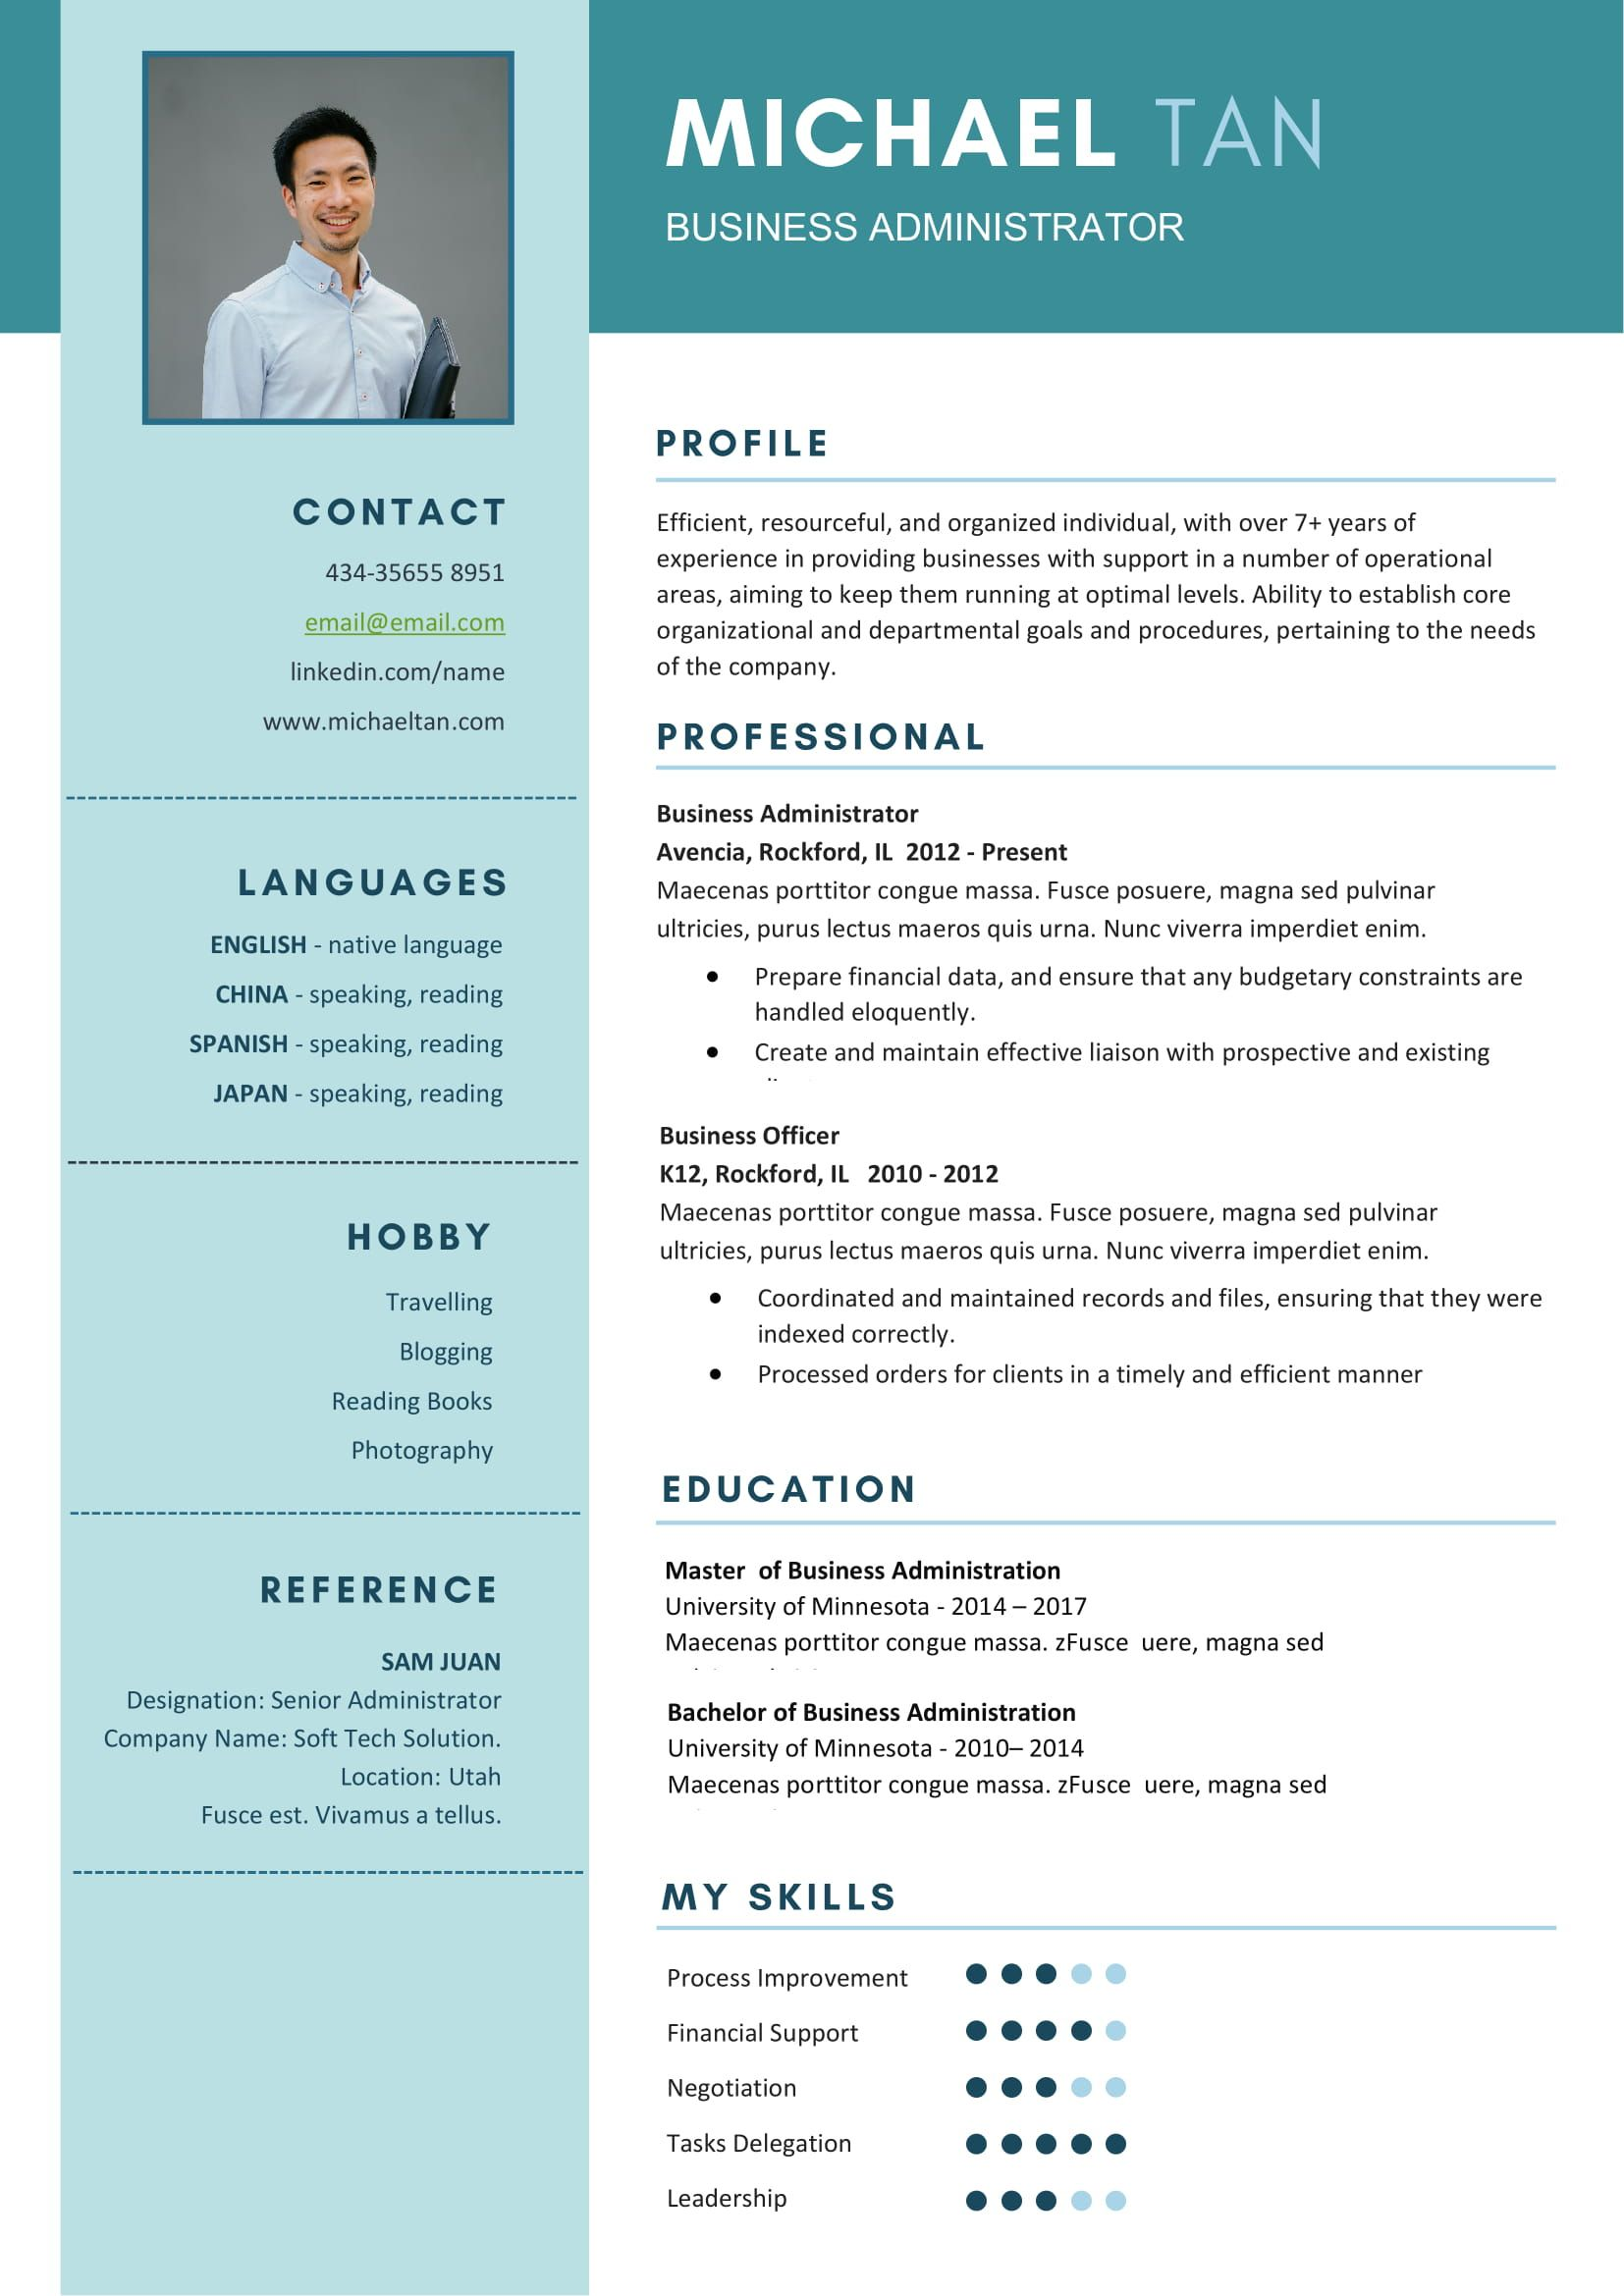 Free business administrator resume template in ms word